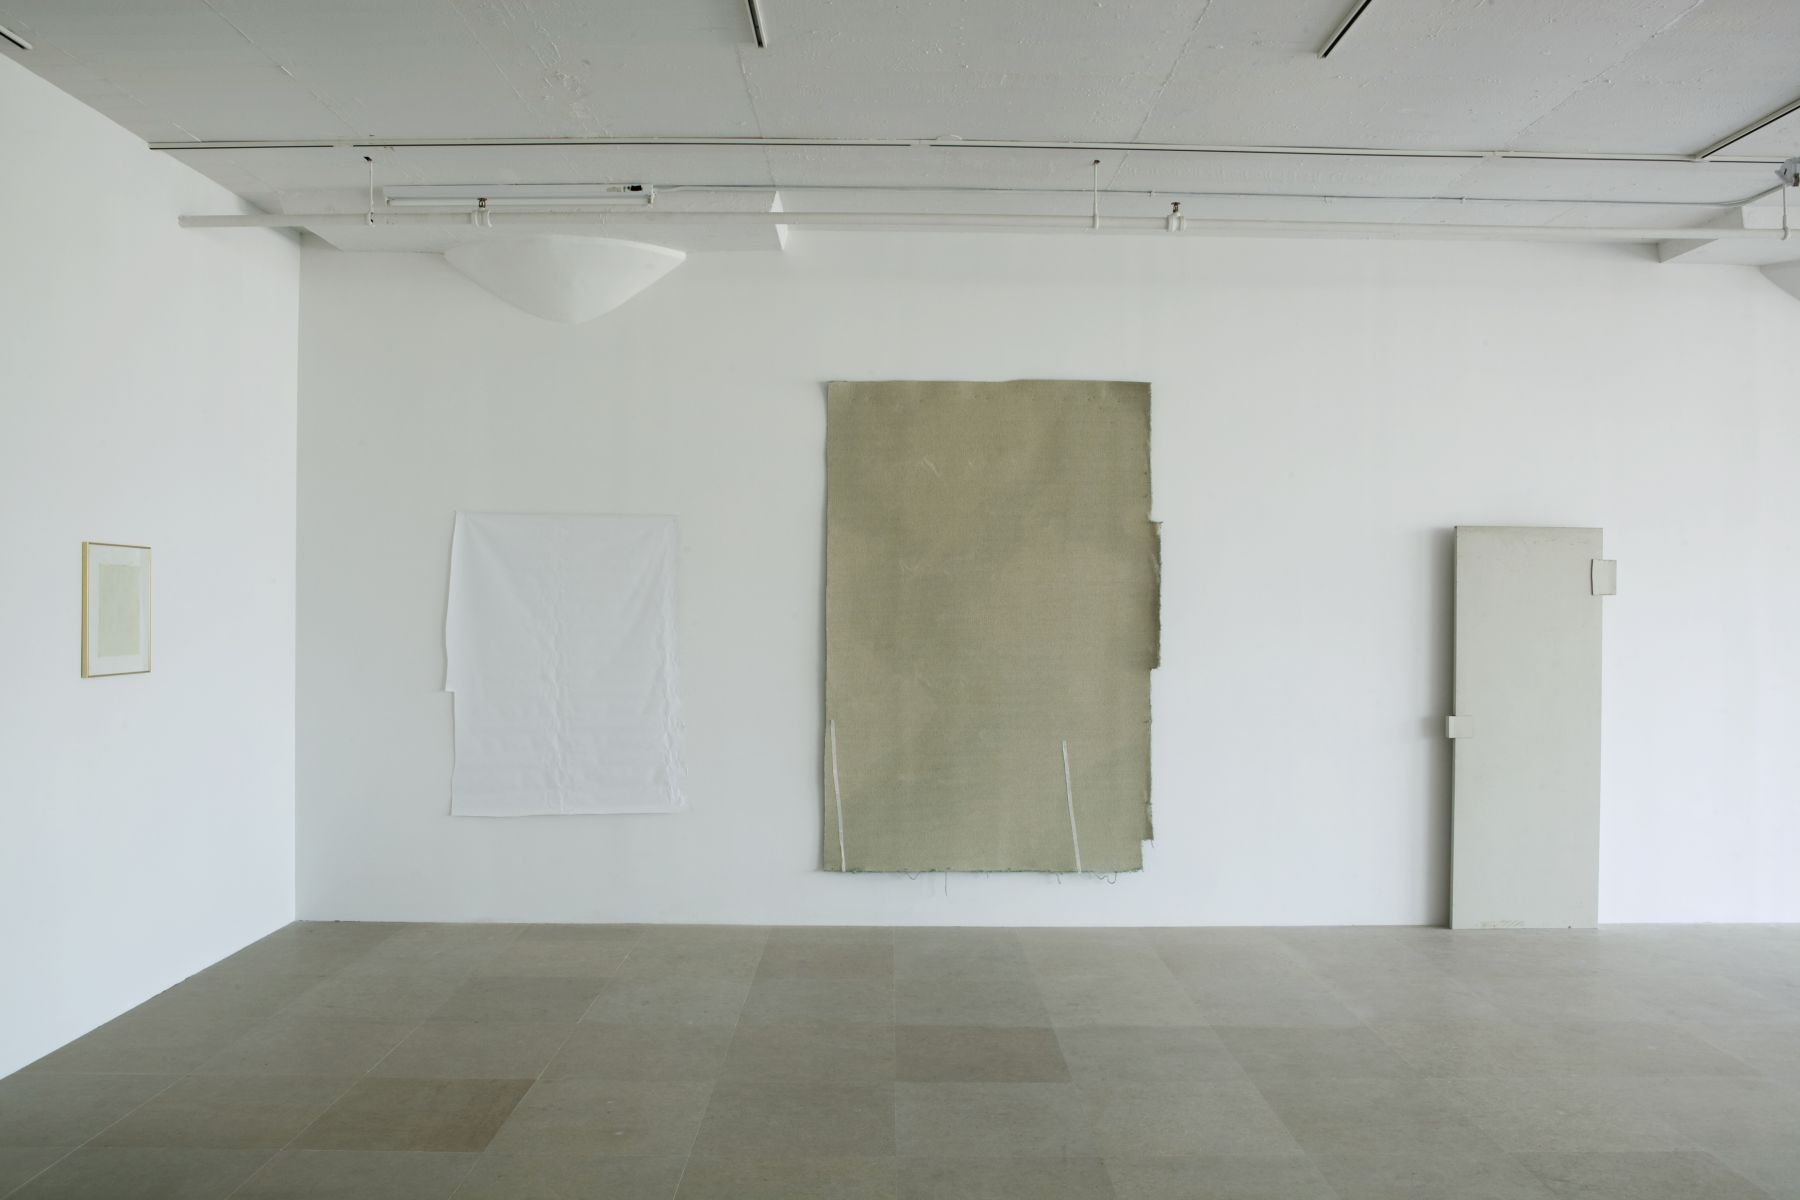 Gedi Sibony  From Center, Skinny Legs, Satisfying The Purposes Completely, and, Her Trumpeted Spoke Lastly, 2010  Hollow core door, paint, carpet, tape, vinyl, matted drawing reversed in frame  Overall footprint: 120 x 120 x 288 inches (304.8 x 304.8 x 731.5 cm)